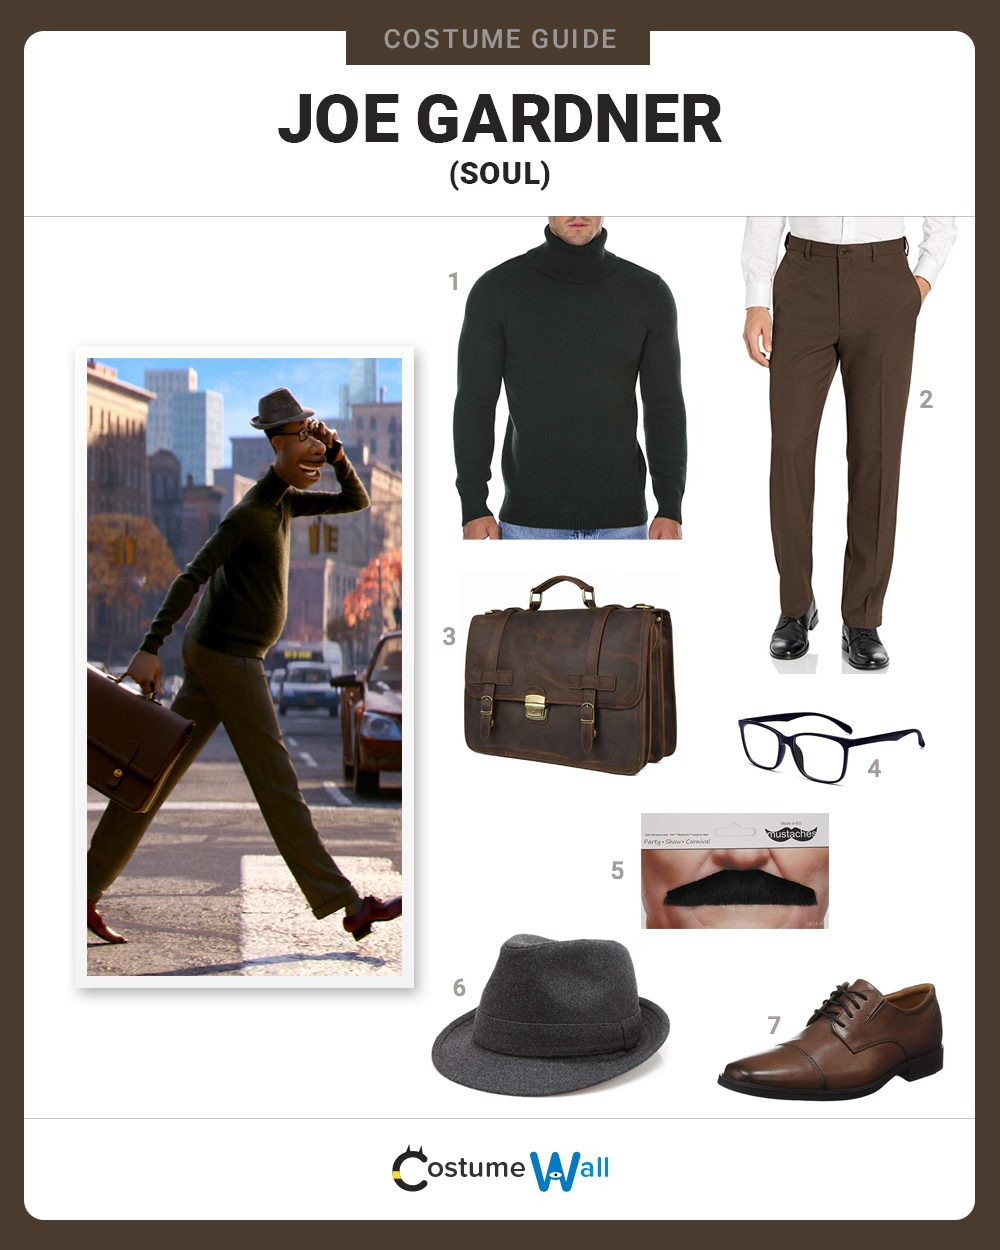 Joe Gardner Costume Guide